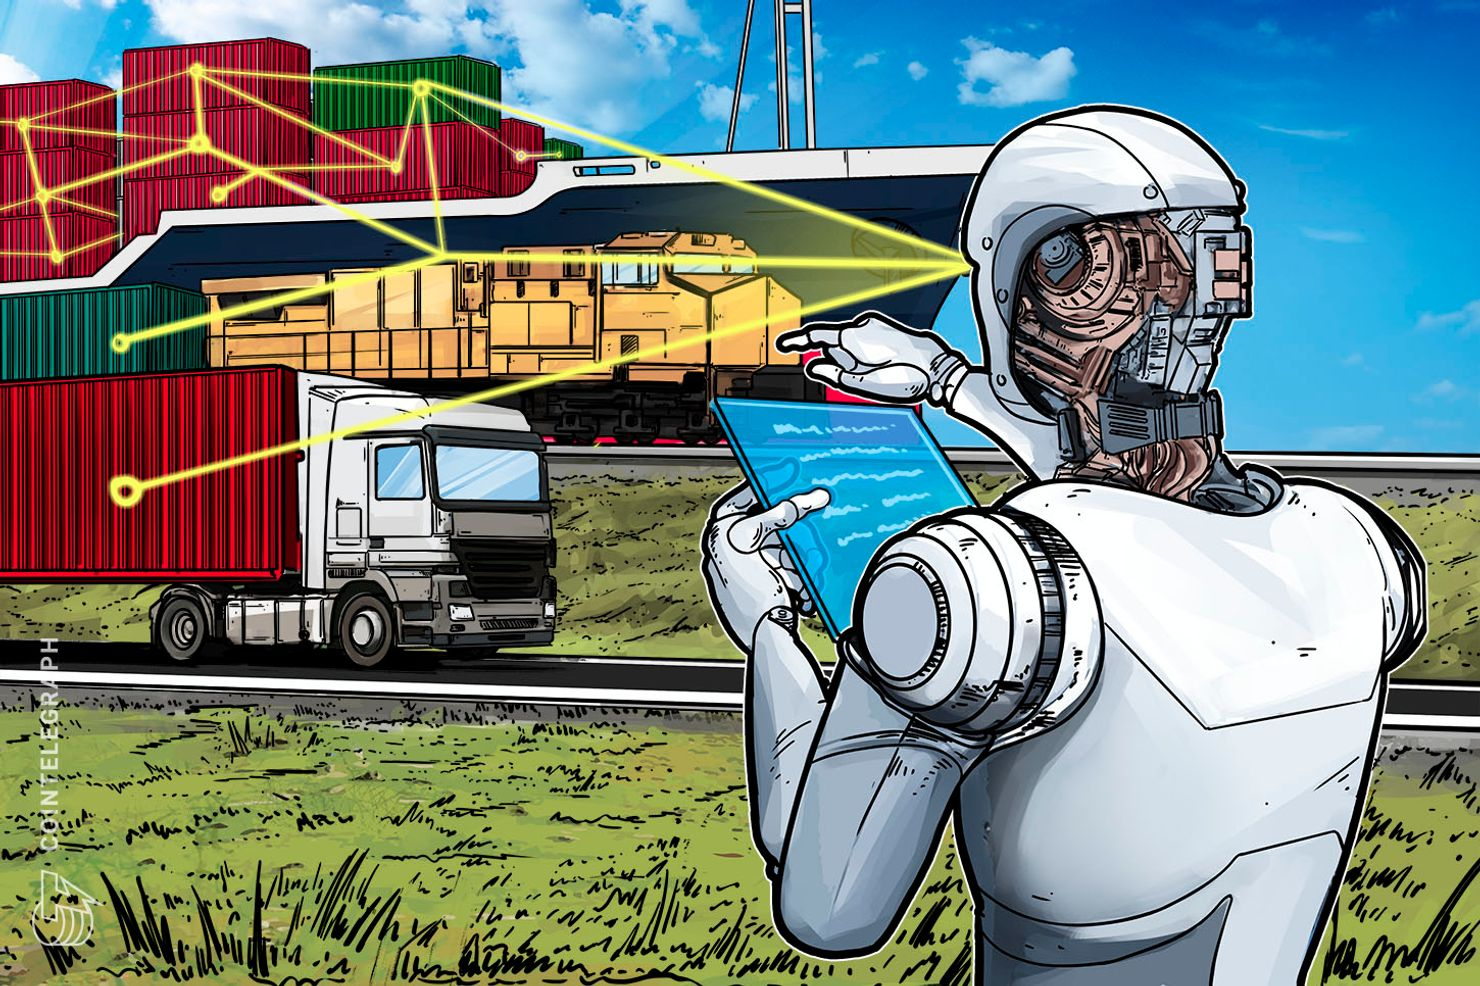 Accenture Works With Mastercard, Amazon to Boost Circular Supply Chain Using DLT